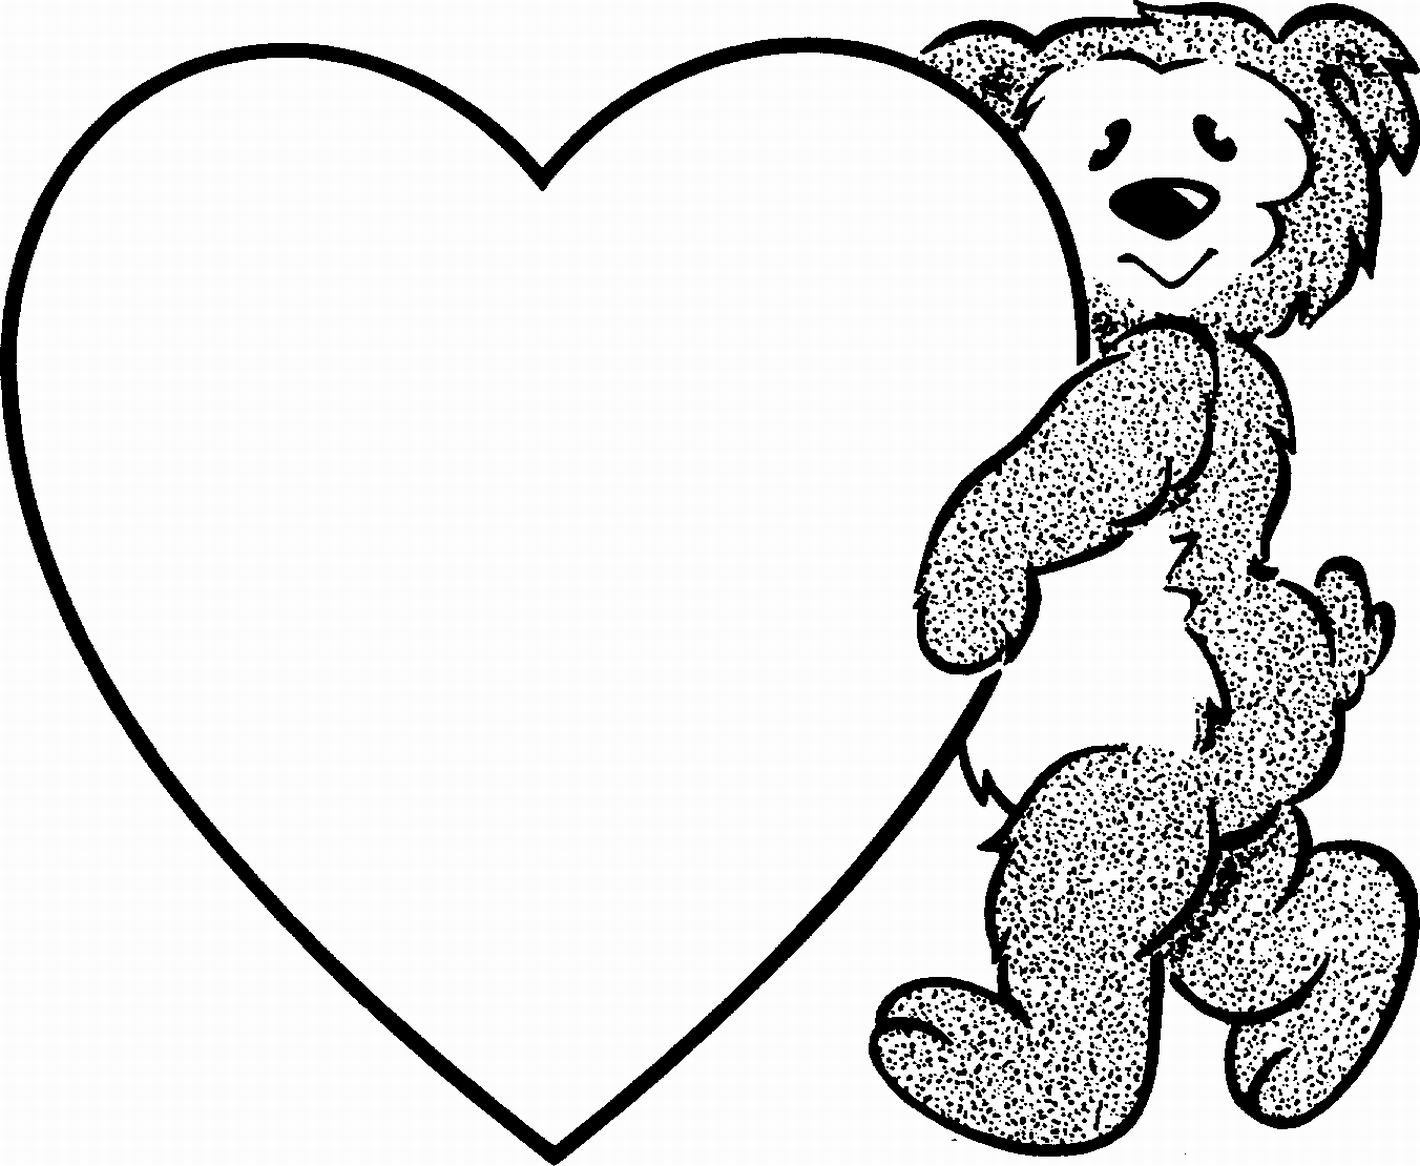 Valentines Day Free Clipart Black And White.